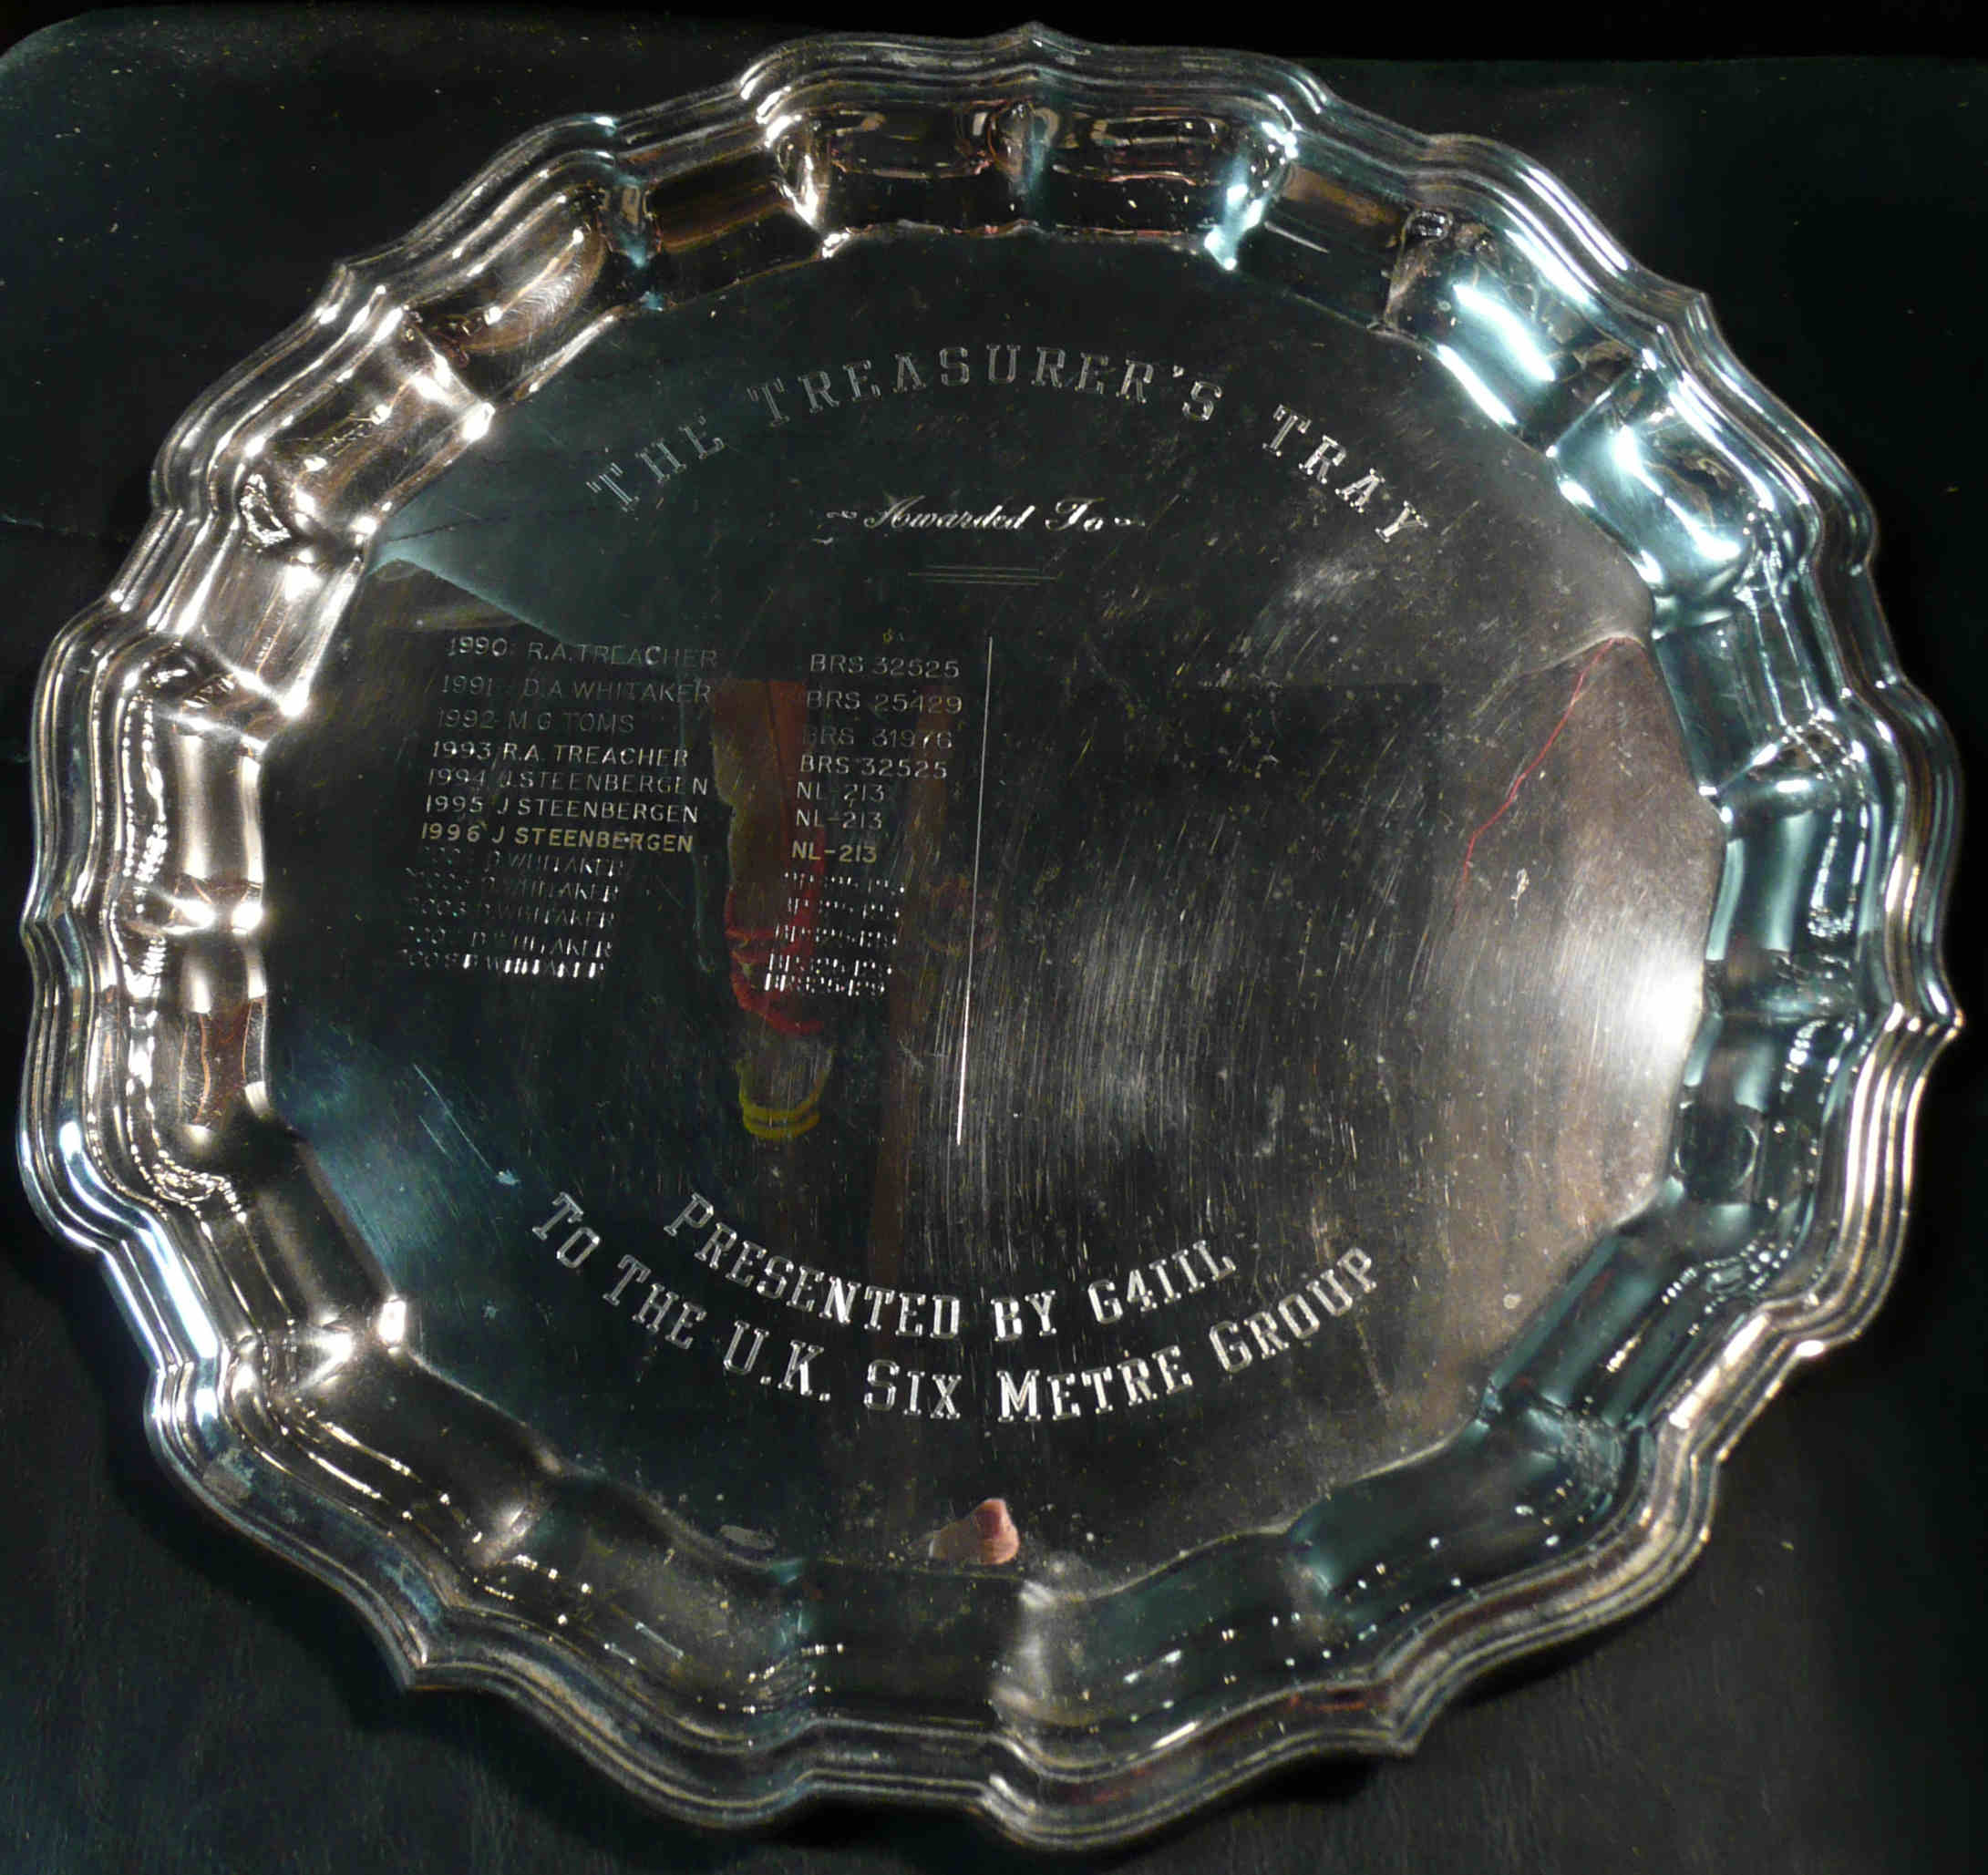 Treasurer's Tray, currently not awarded